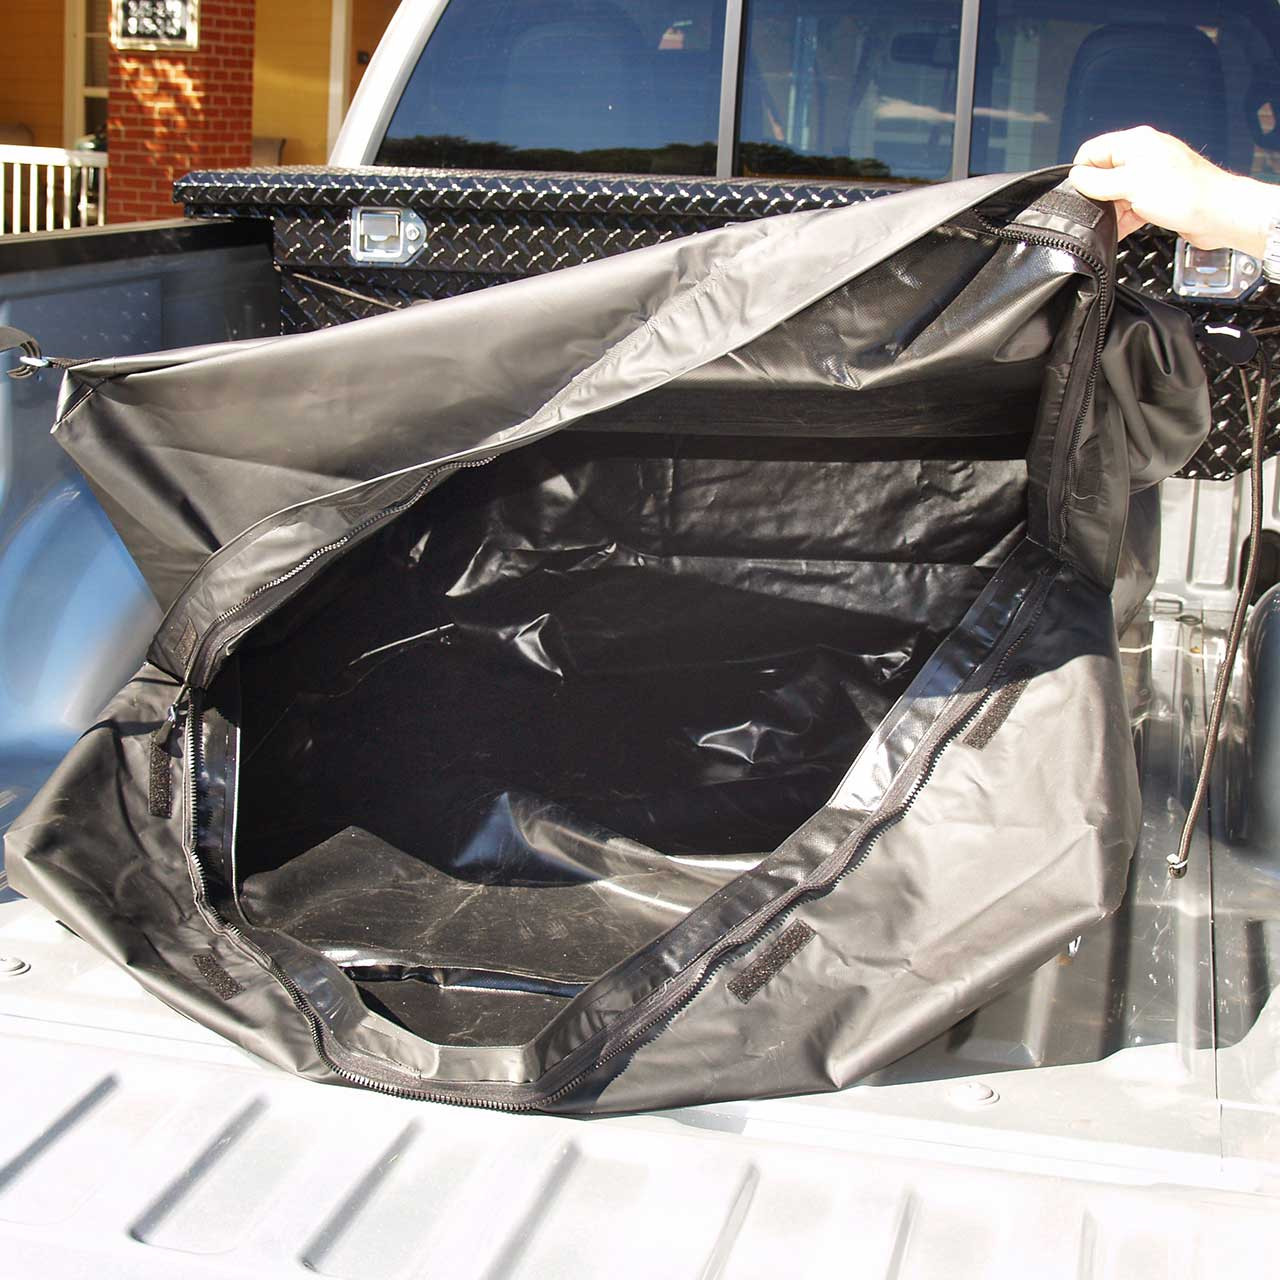 Open waterproof black Tuff Truck Bag so the viewer can see how large the inside area of the bag for keeping cargo and luggage dry and safe